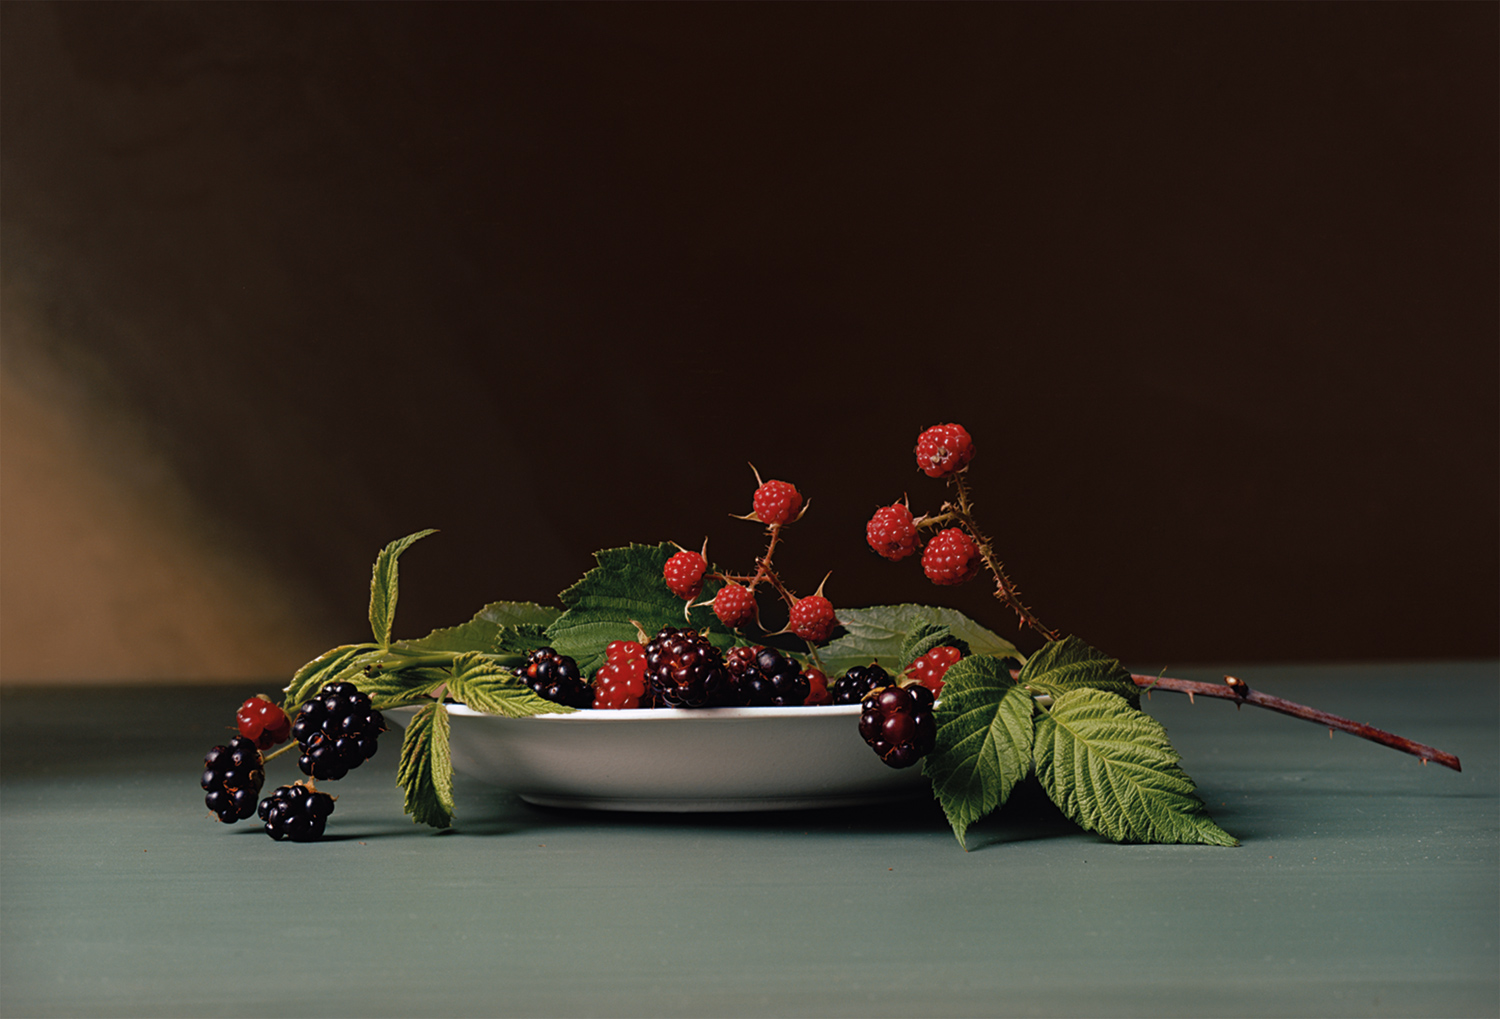 Plate 2 - Blackberries